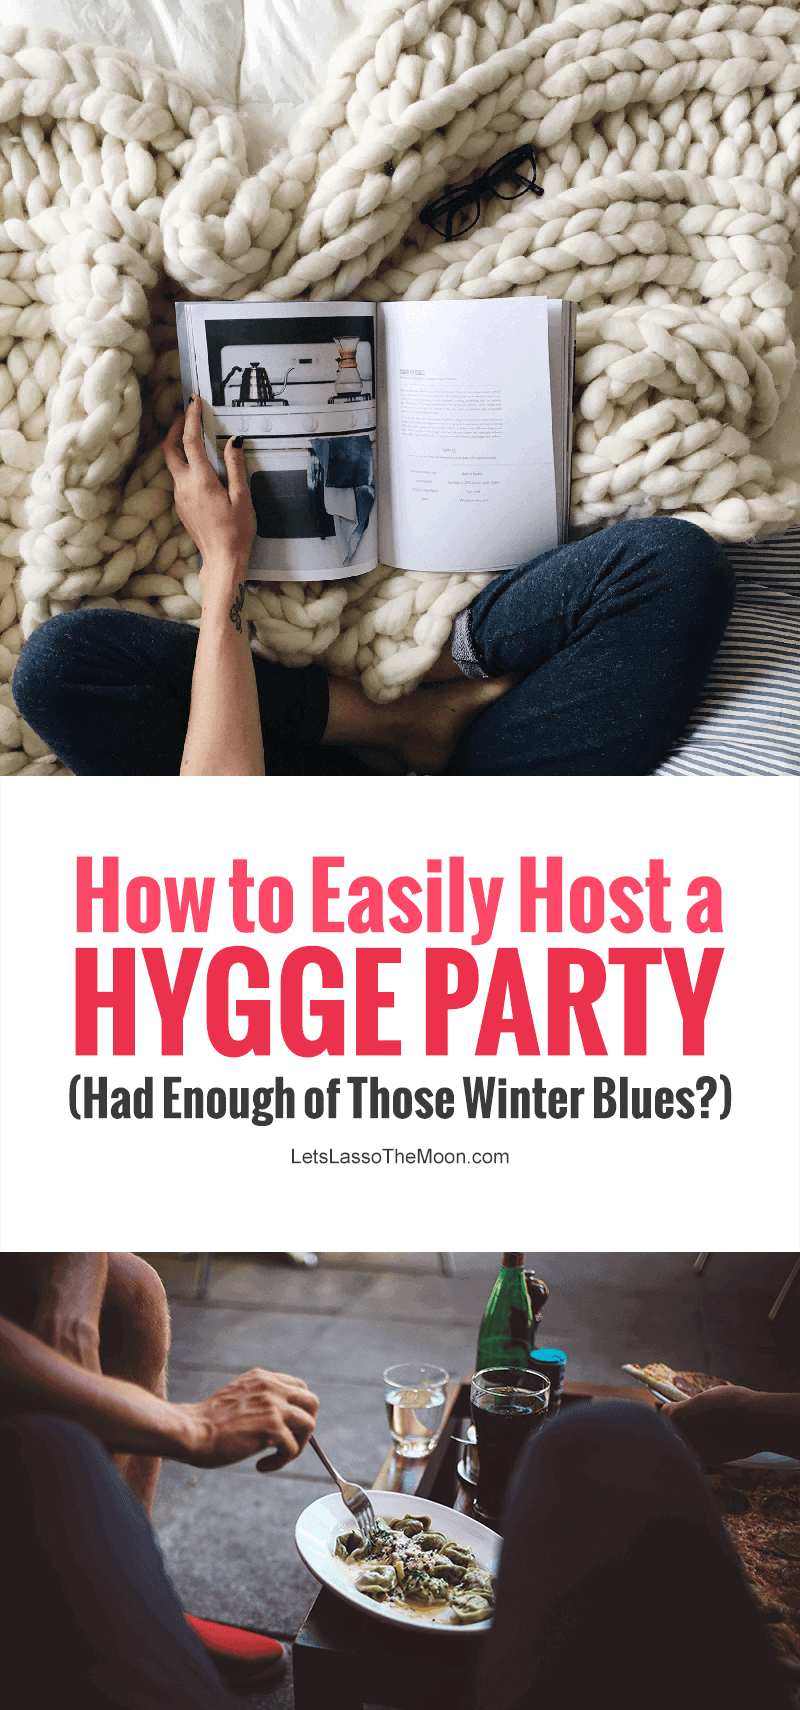 Had enough of the winter blues? How to easily host a hygge party - Ditch the winter doldrums by pausing to celebrate slow at a cozy party with friends and family #hygee #hygeeparty #simpleliving #becomingunbusy *Love these winter dinner party planning tips